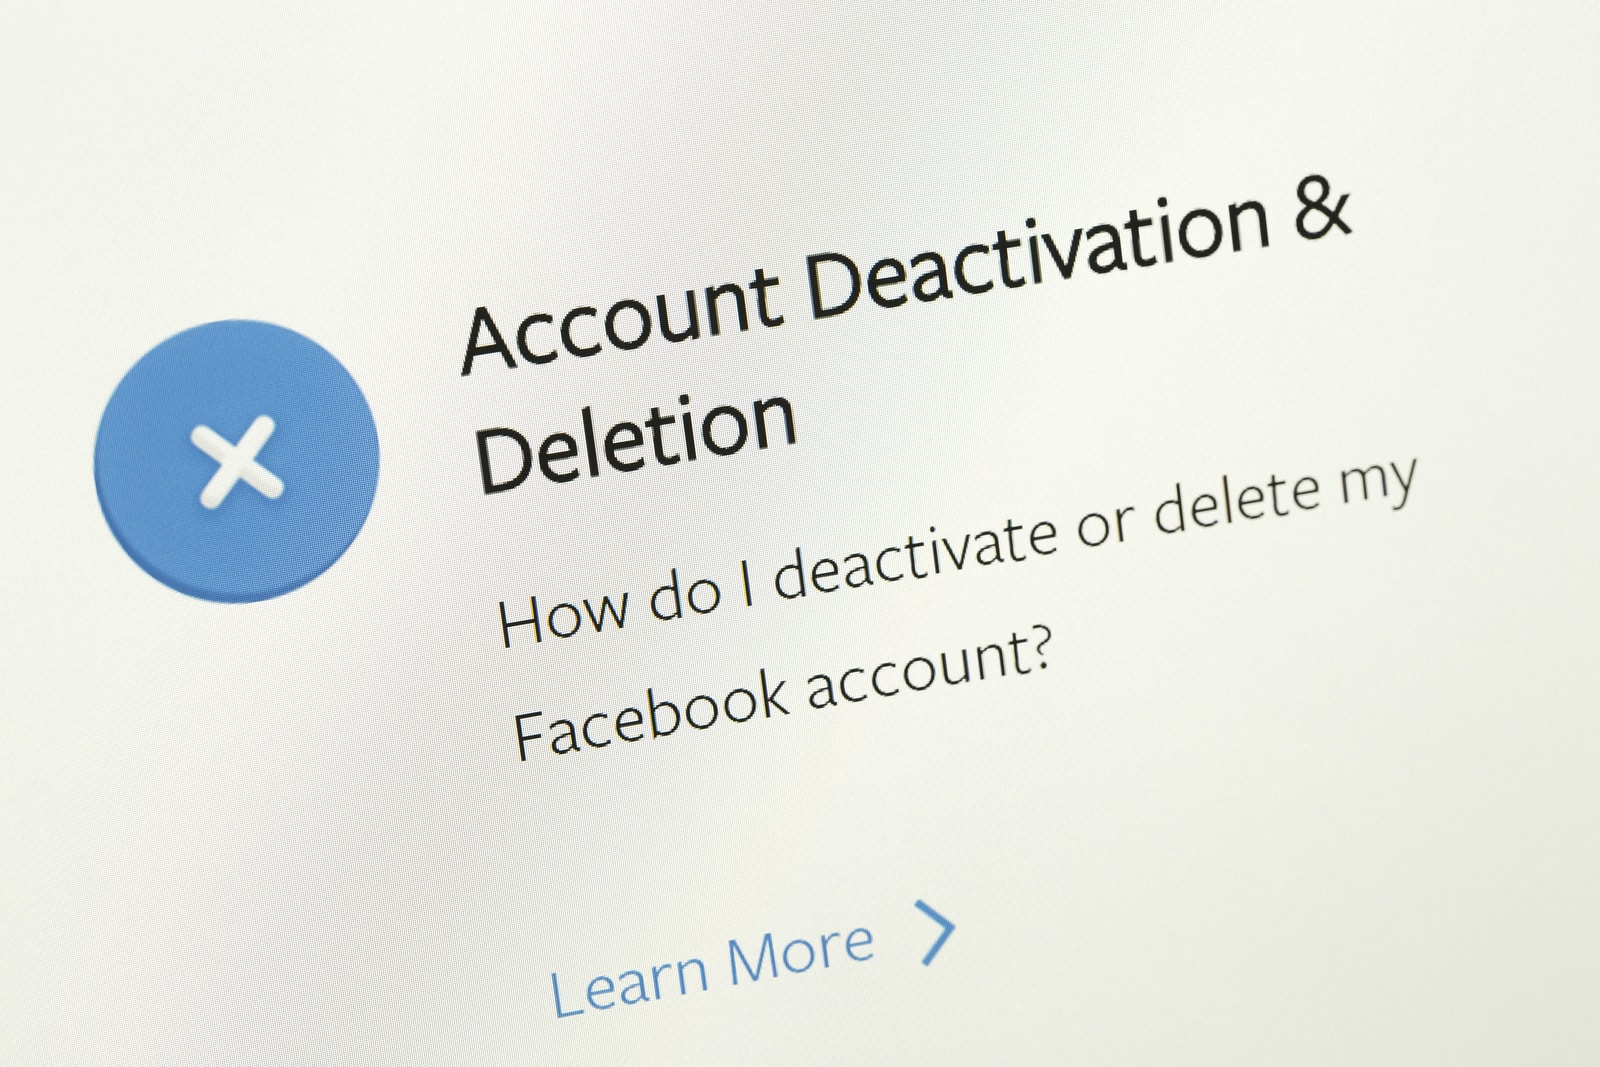 FAQ area about desactivation or deletion facebook account